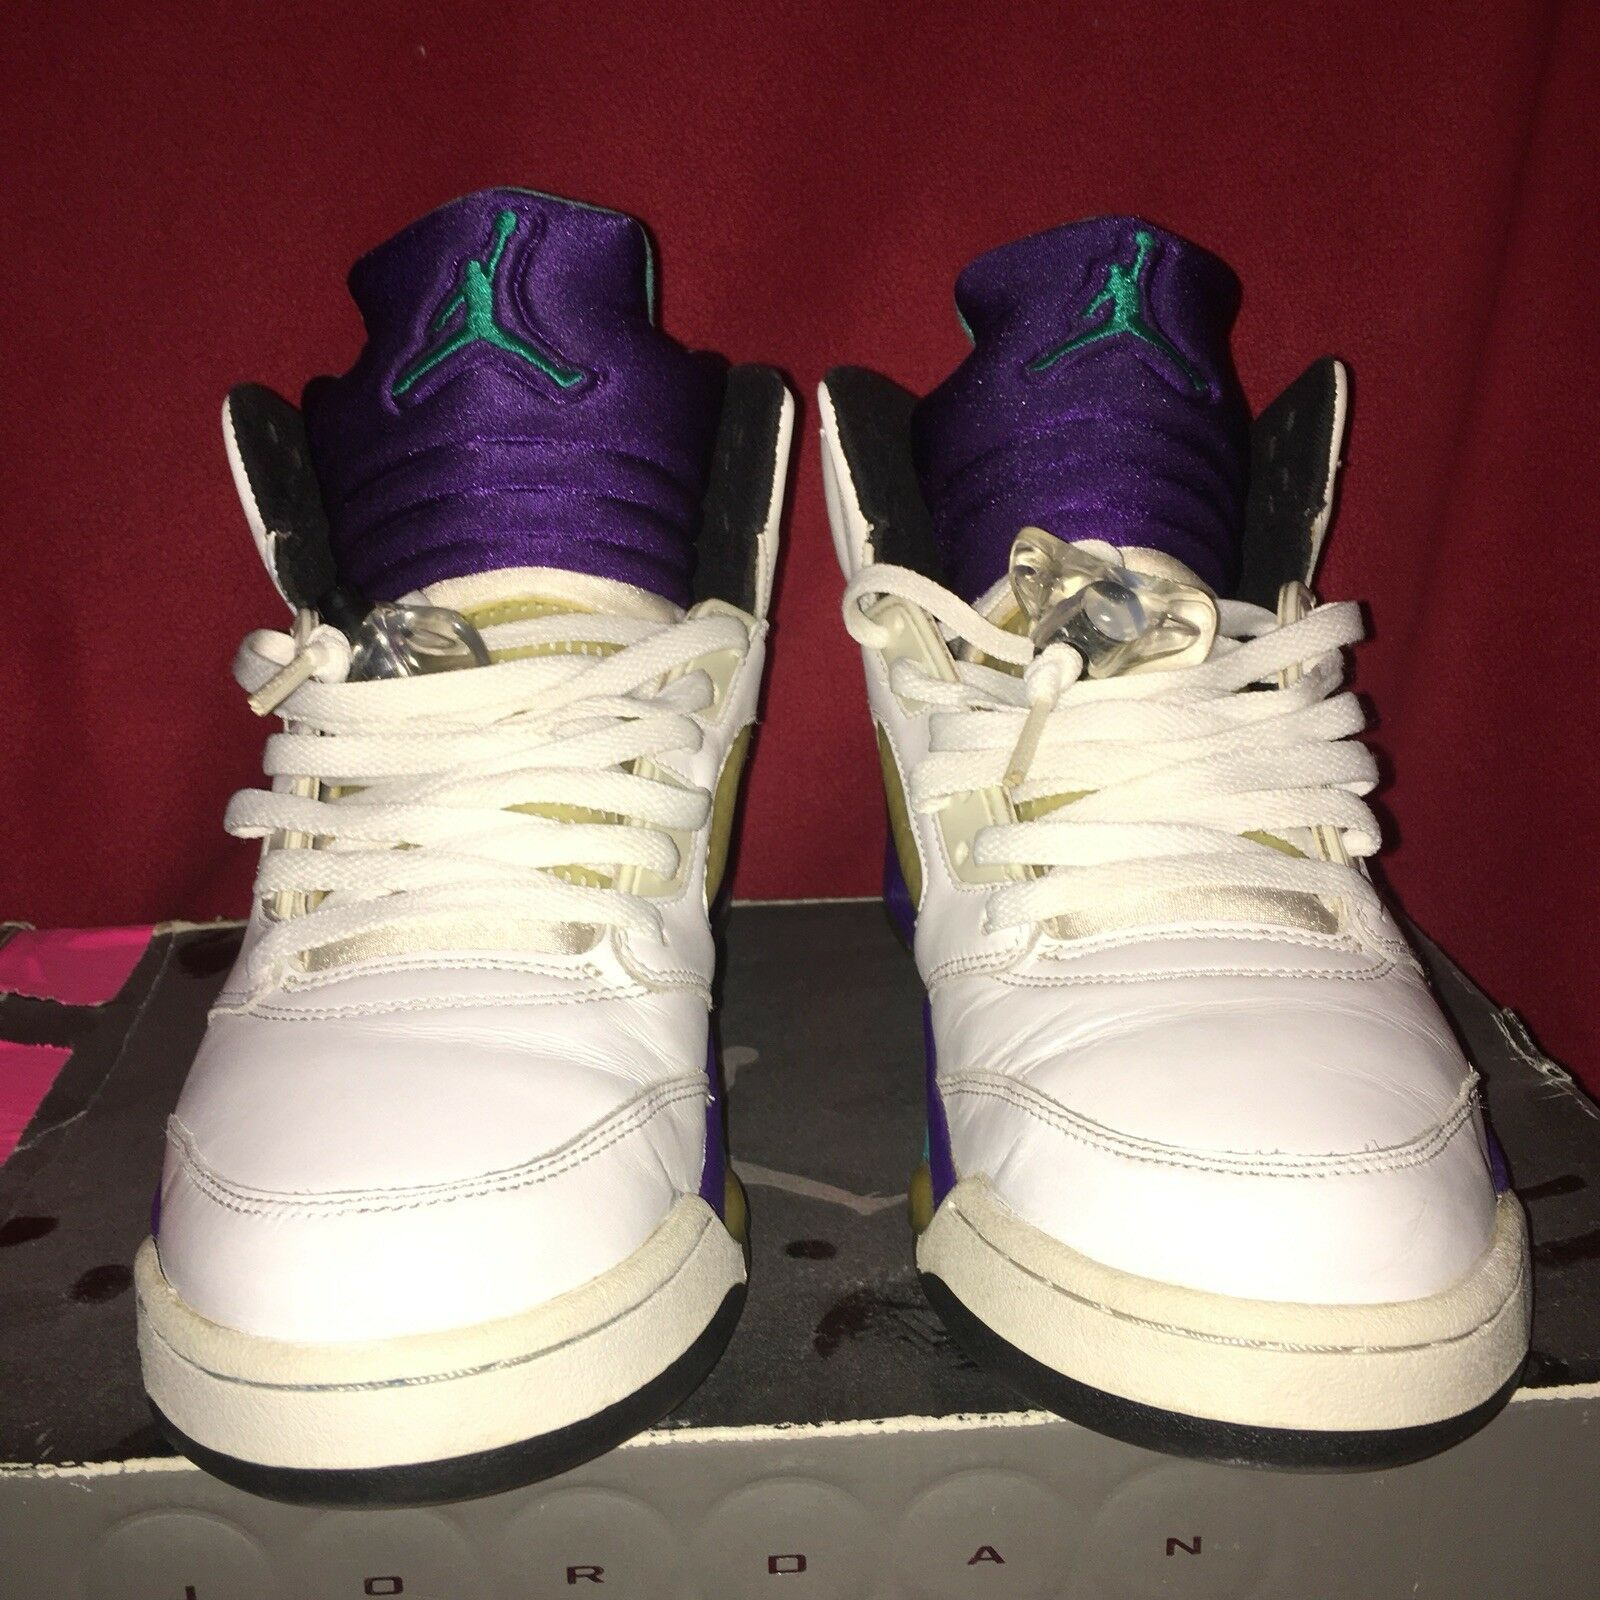 Air Jordan 5 Retro White Grape 2006